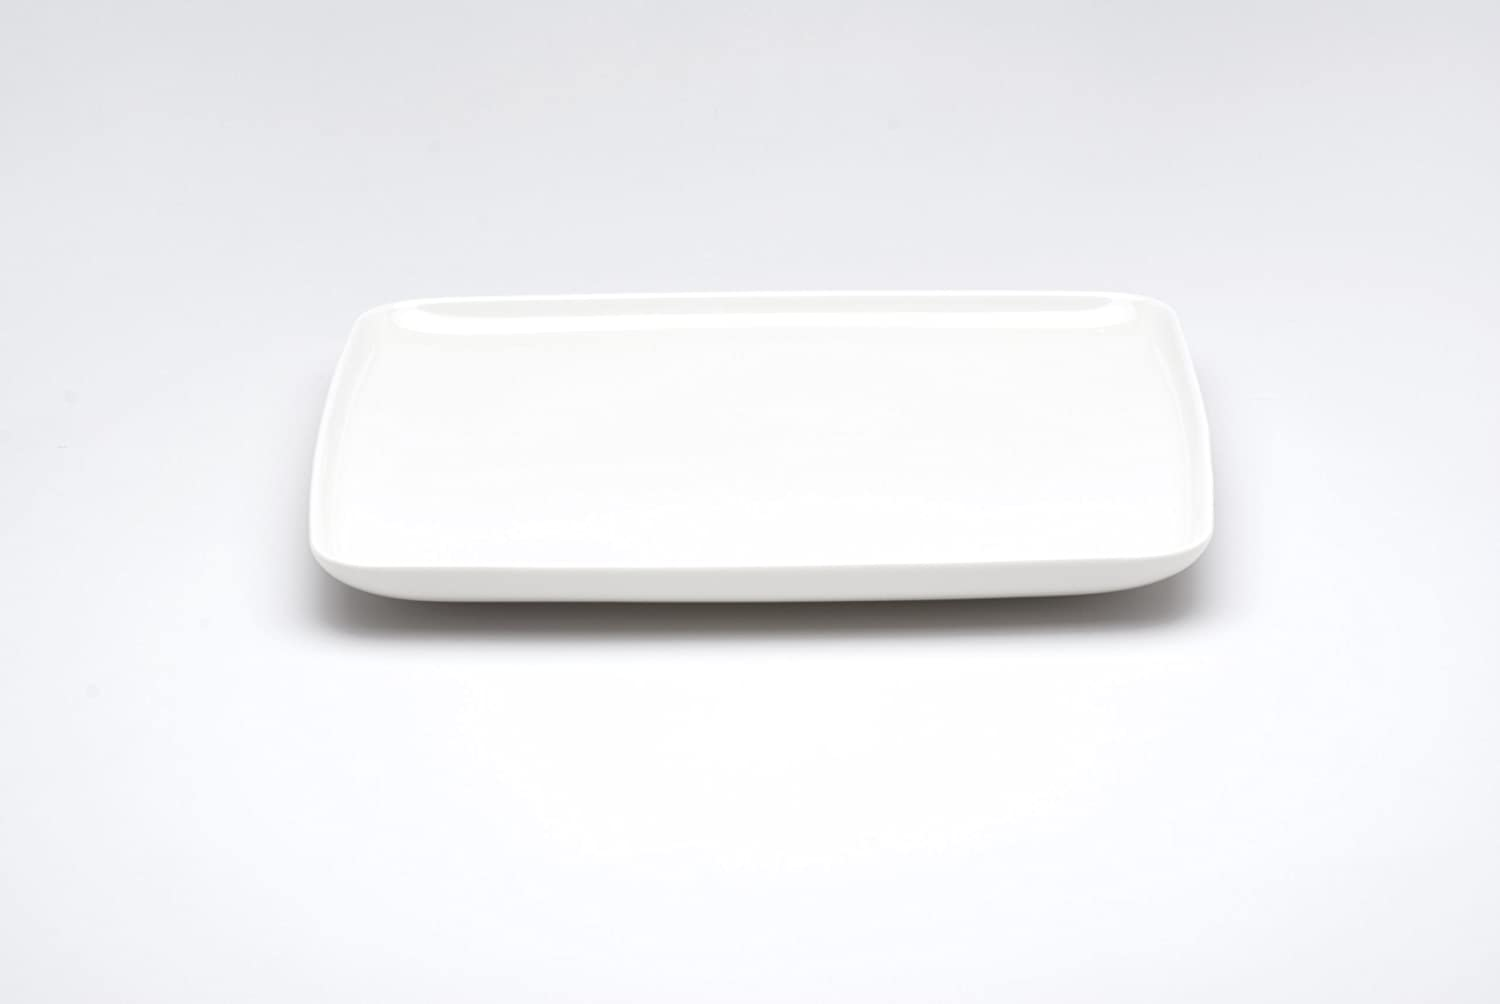 Amazon.com Red Vanilla Everytime White Rectangular Dinner Plate Kitchen u0026 Dining & Amazon.com: Red Vanilla Everytime White Rectangular Dinner Plate ...